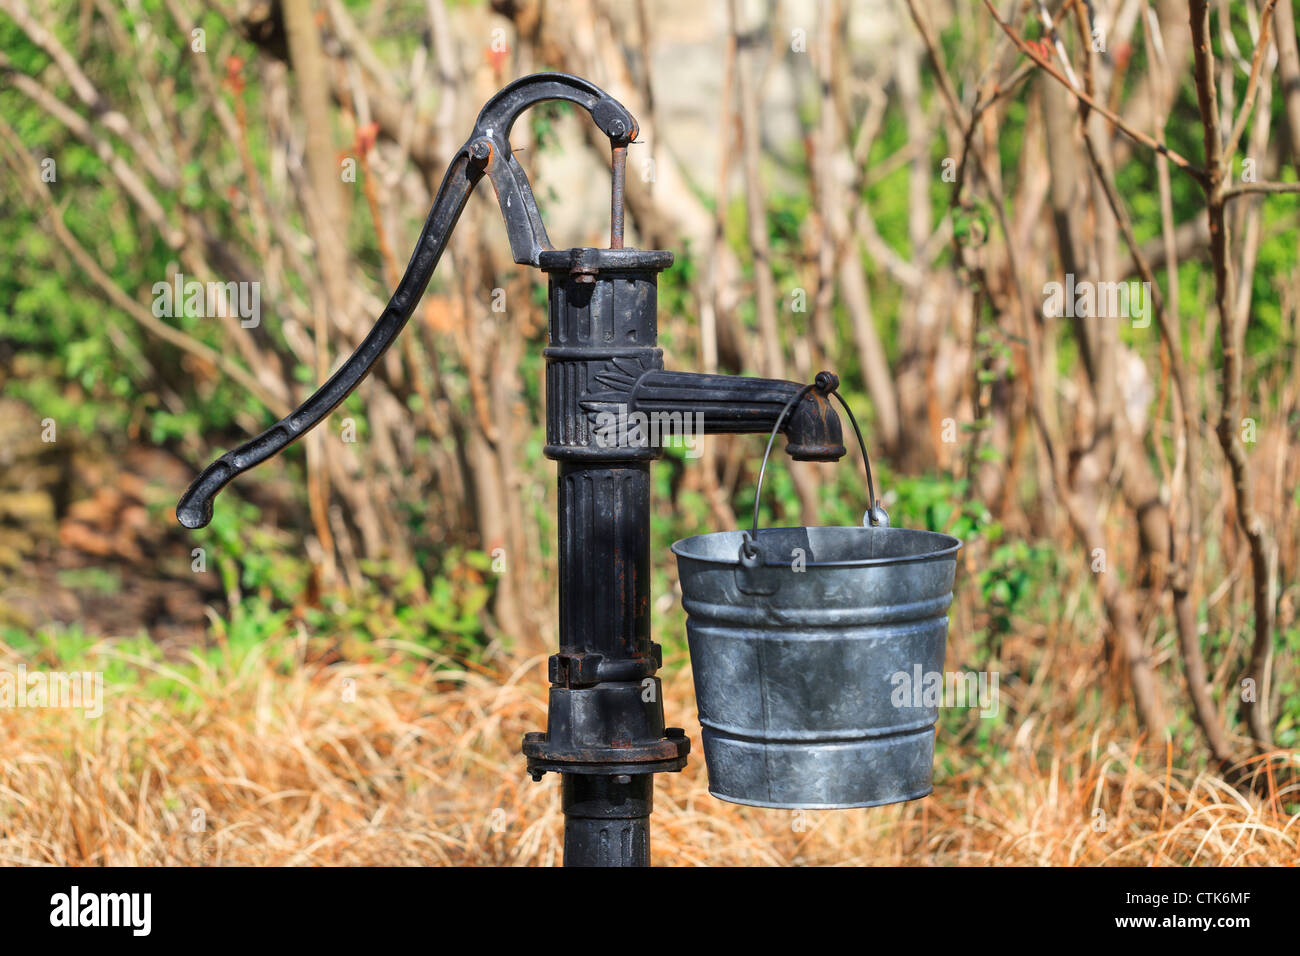 Old Water Pump And Metal Bucket Stock Photo Royalty Free